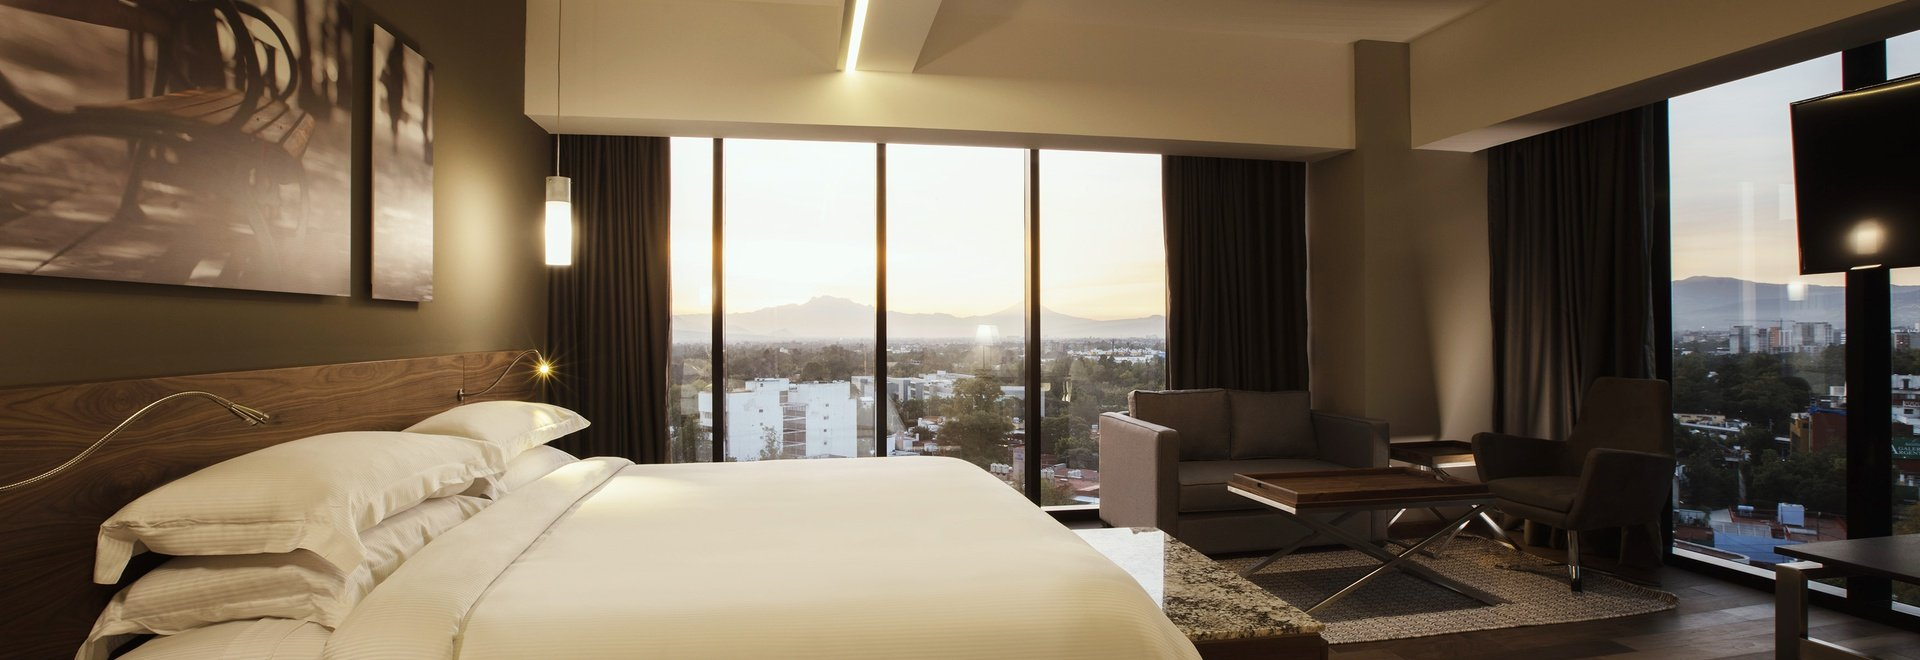 Krystal Grand Suites Insurgentes - Comfort, style, connectivity